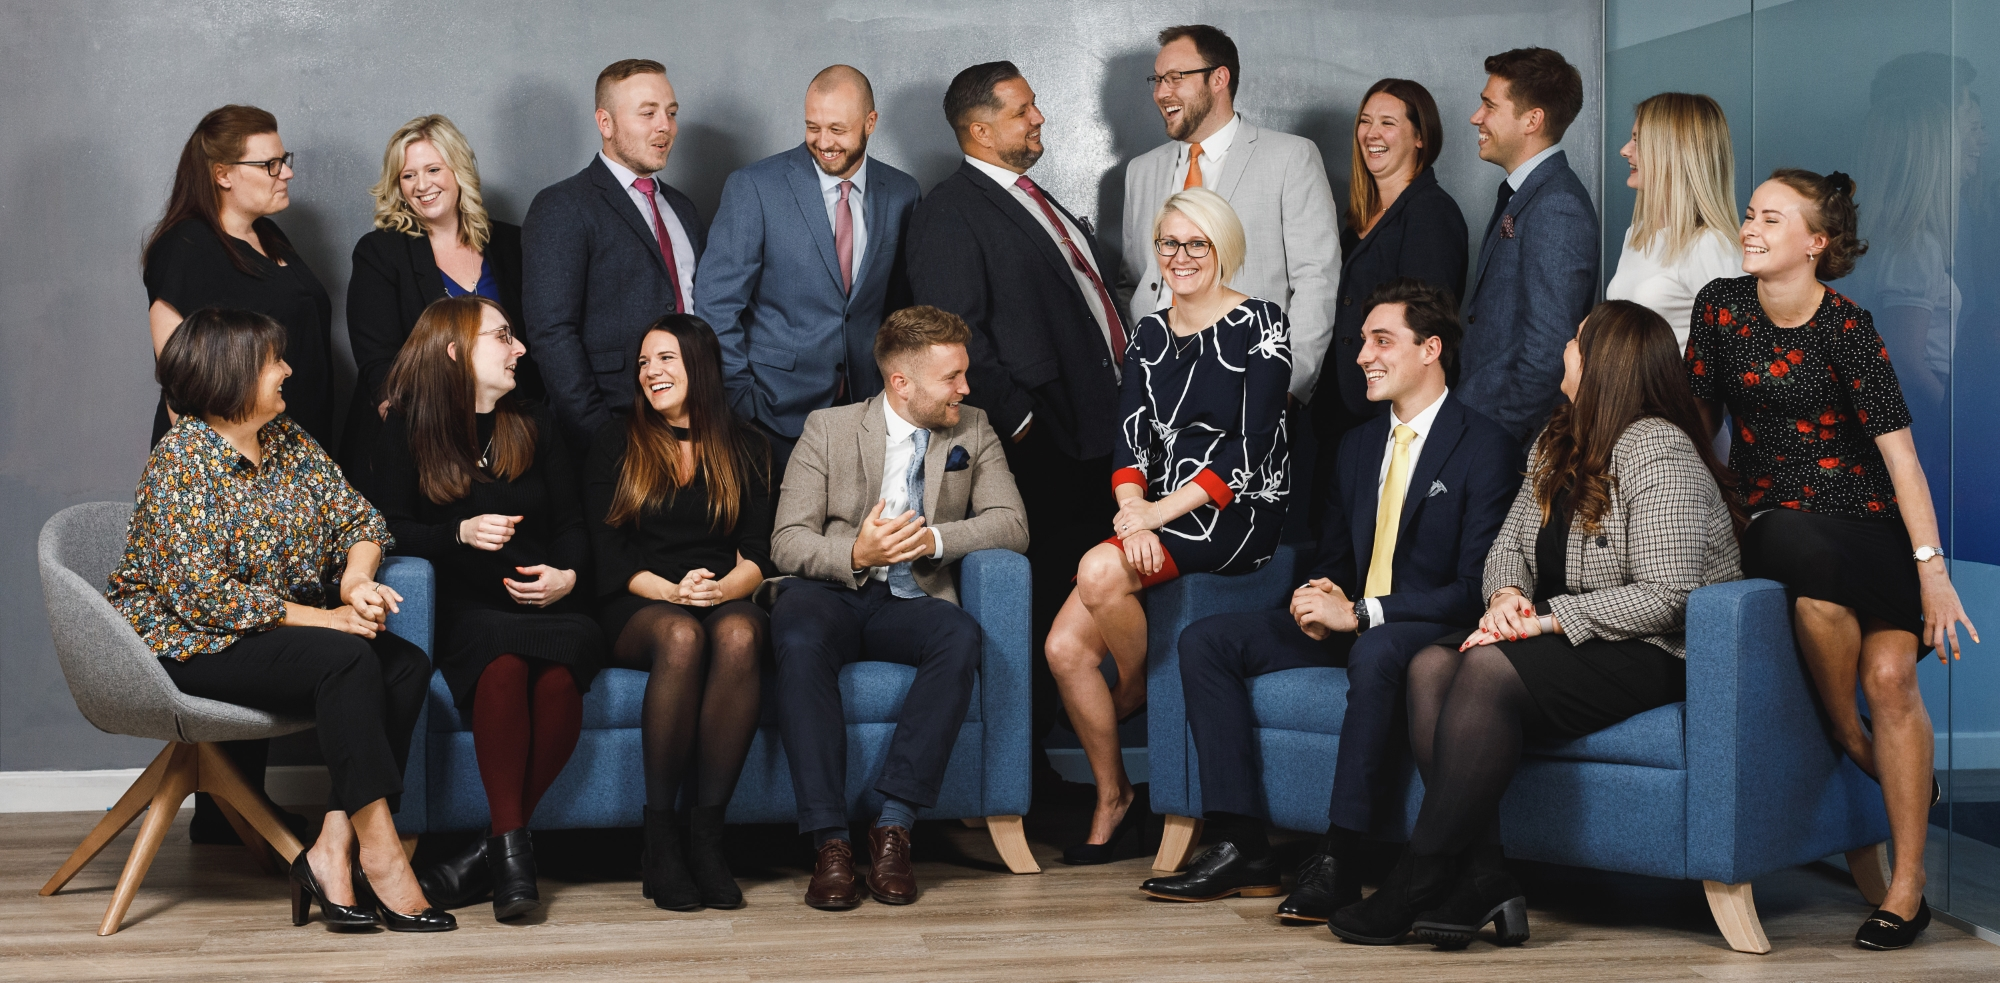 Mortgage Light - Meet the Team